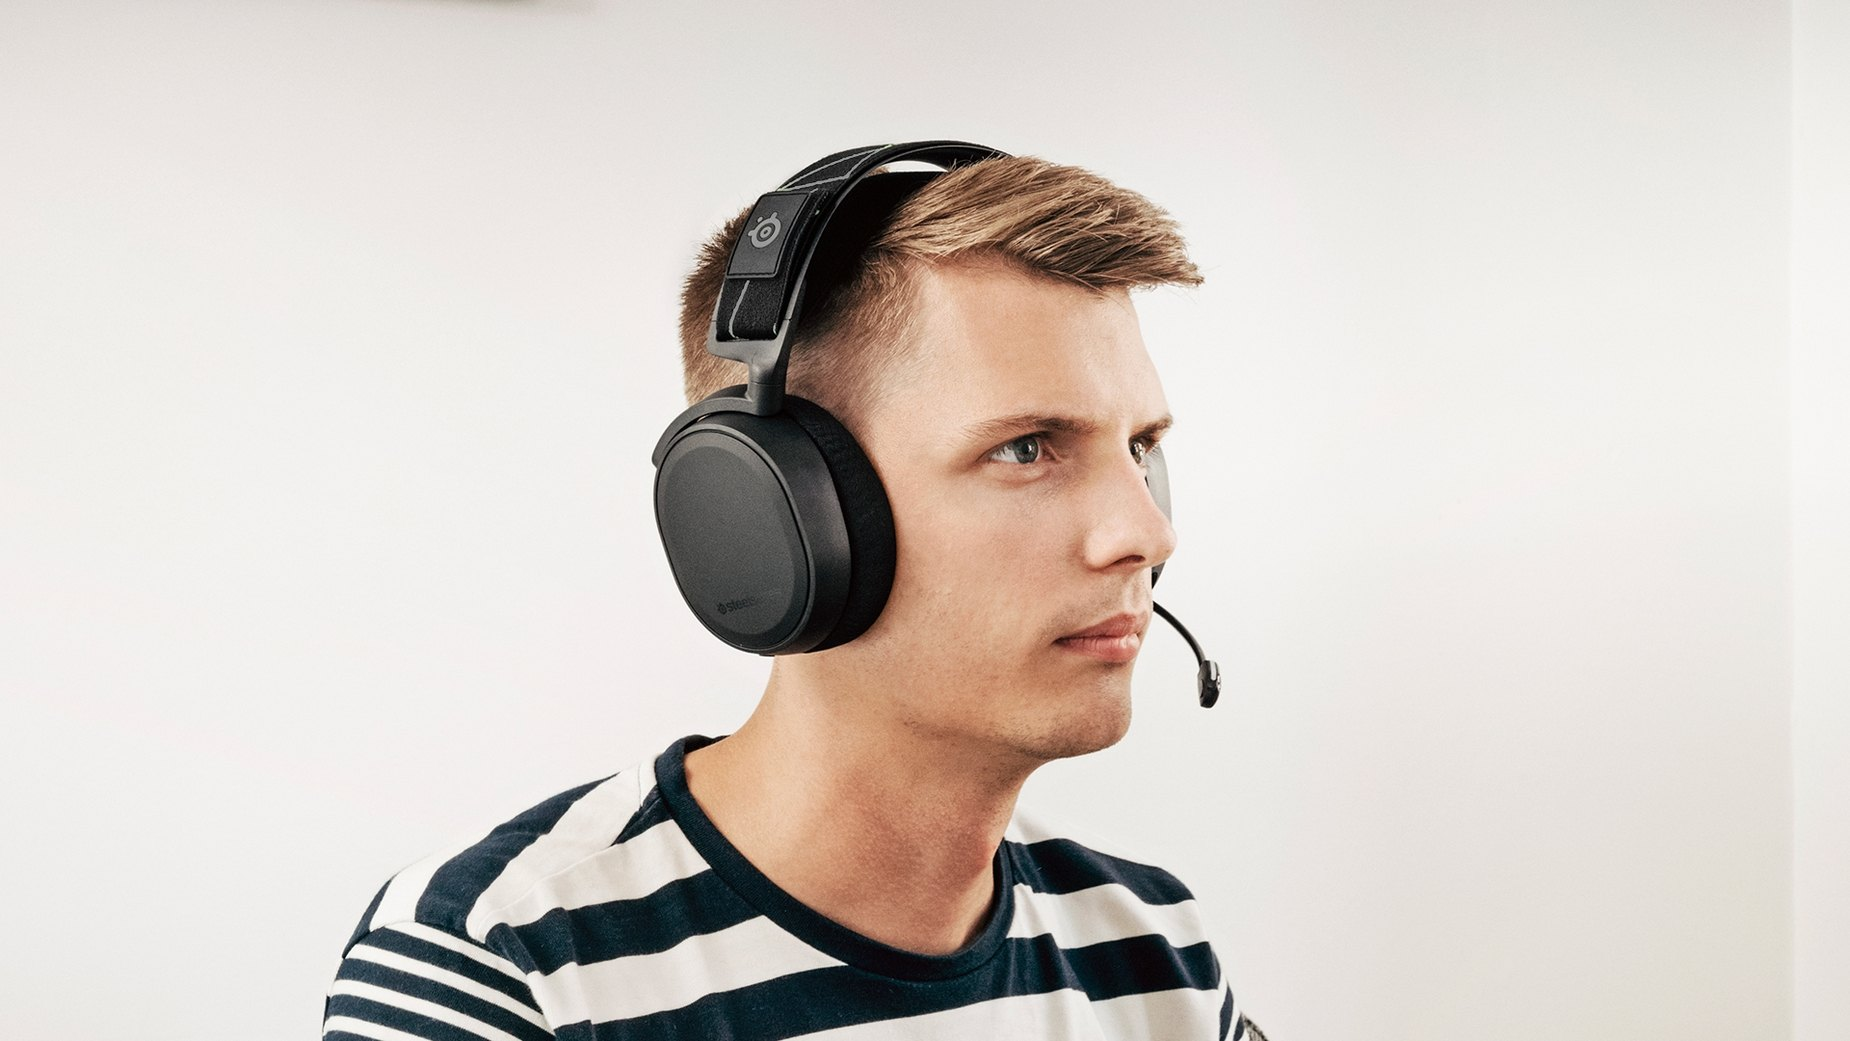 Gamer wearing Arctis 7 headset with microphone extended